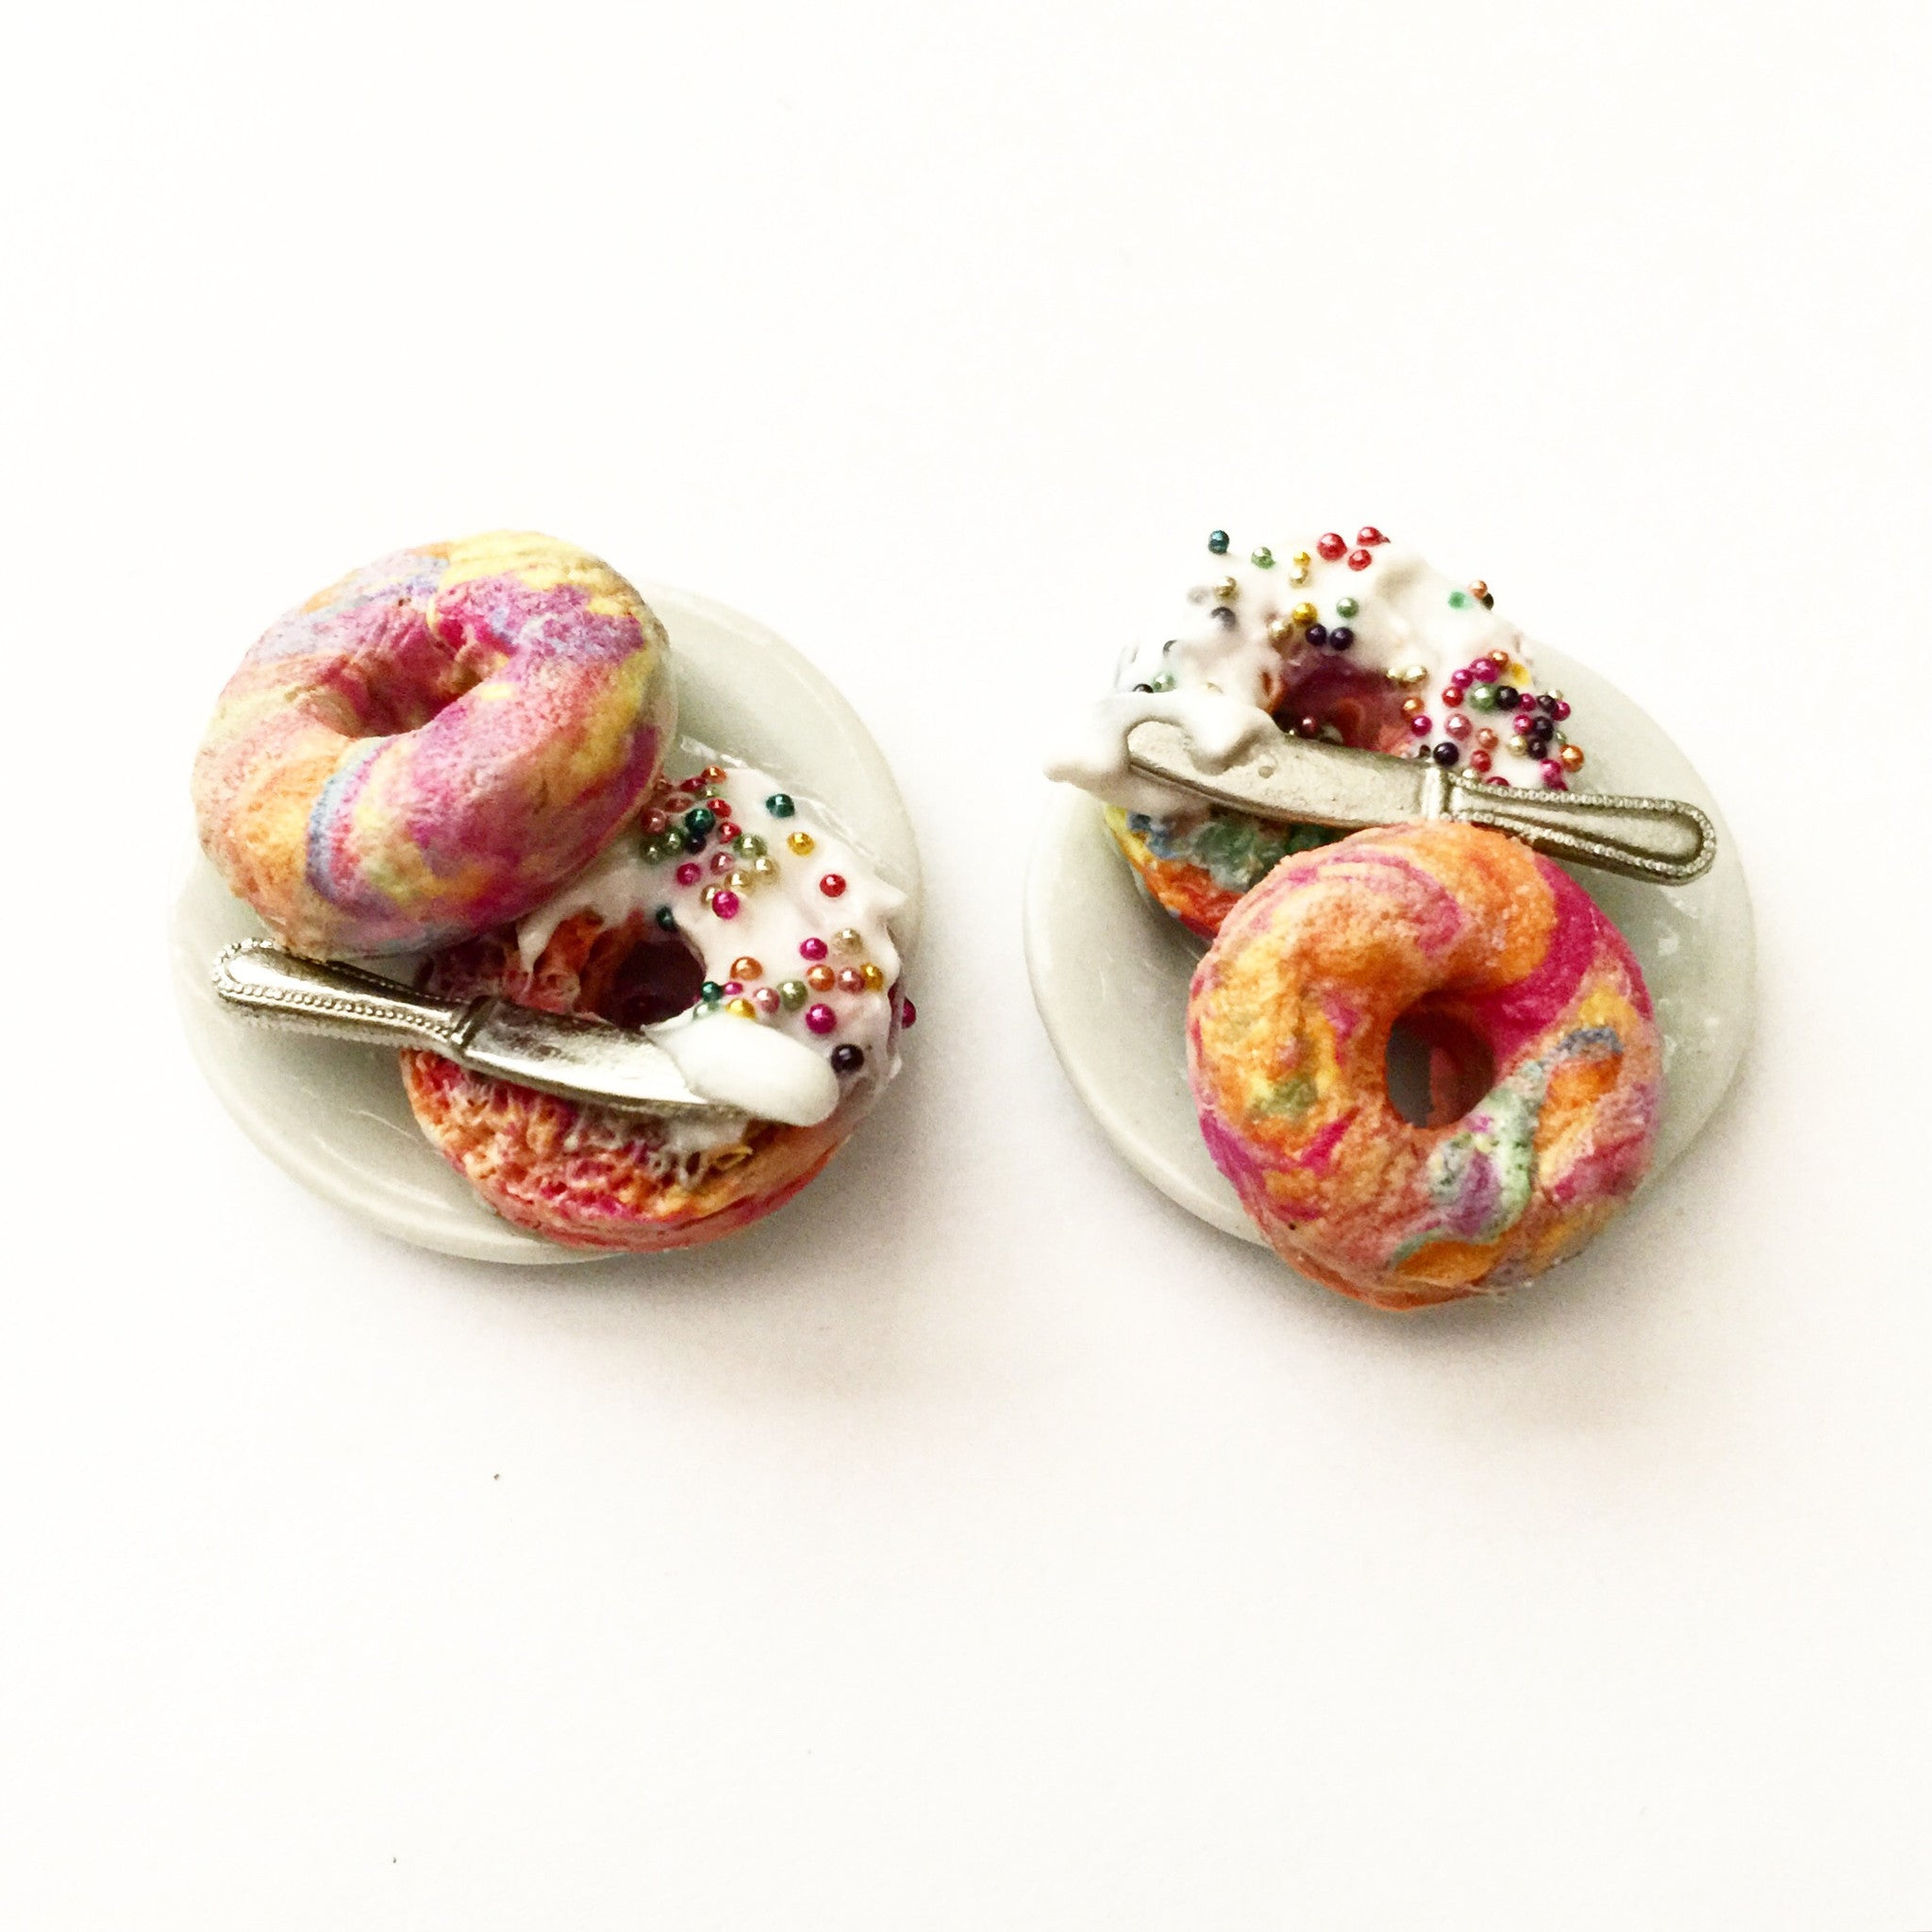 Rainbow Bagel Ring - Jillicious charms and accessories - 7